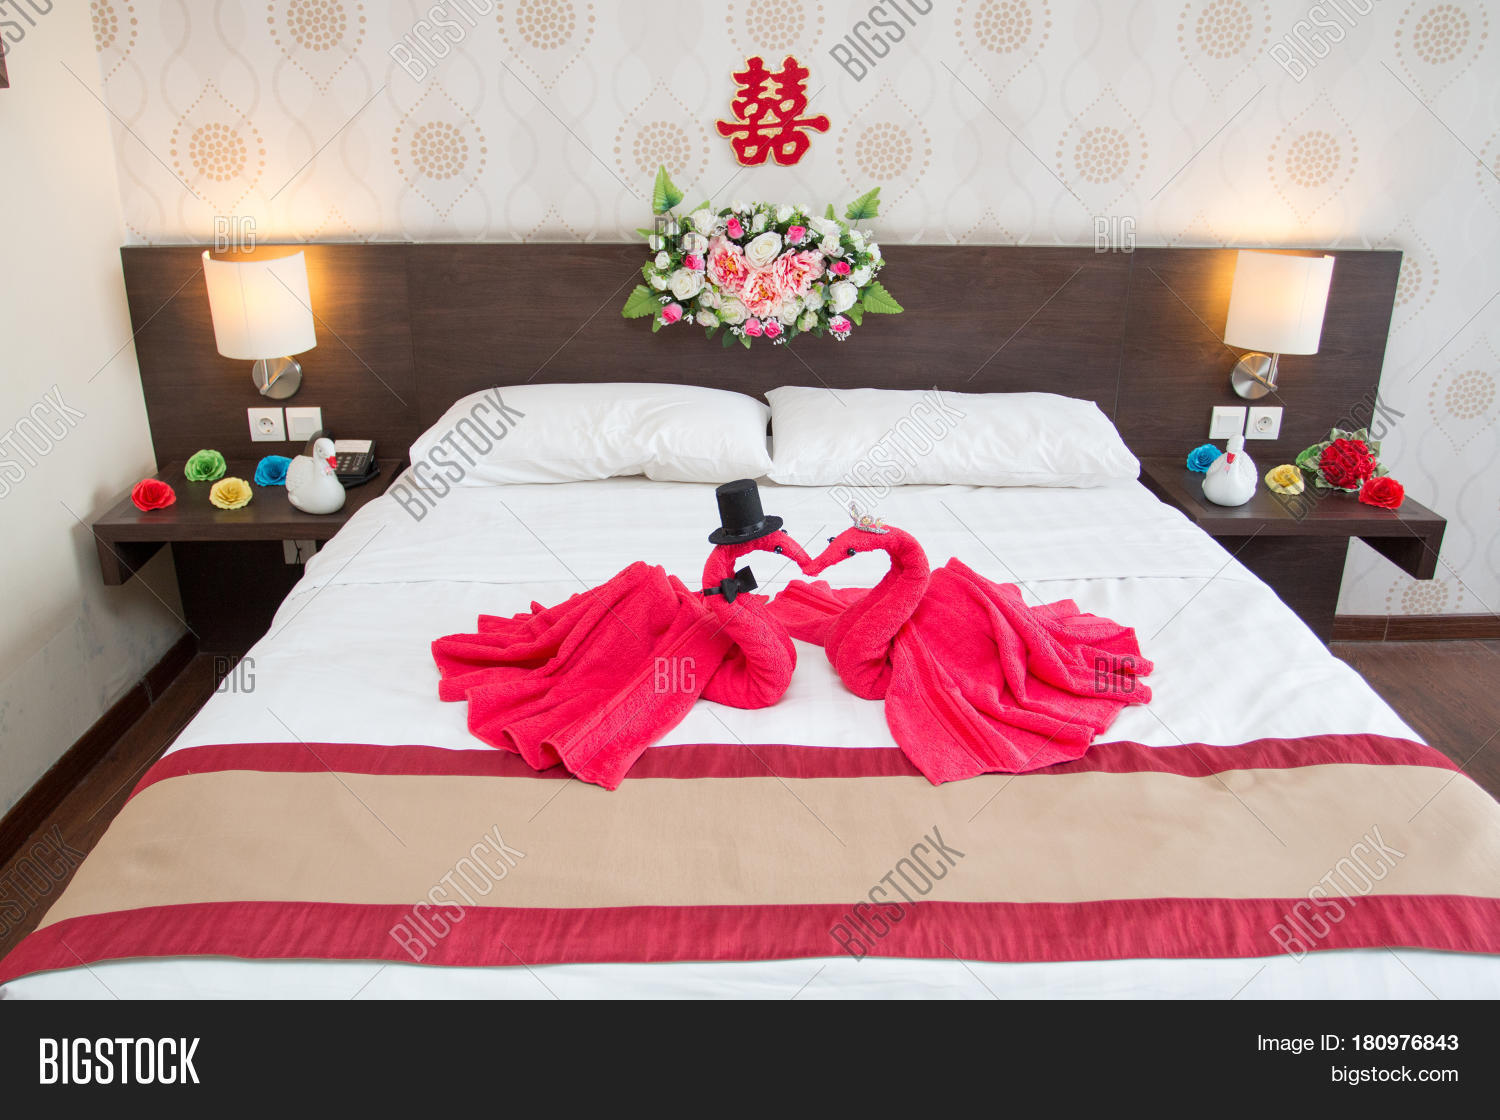 Two Swans Made Of Towels Forming Heart Shape On Bed In Honeymoon Suite Room Hotel Decorated